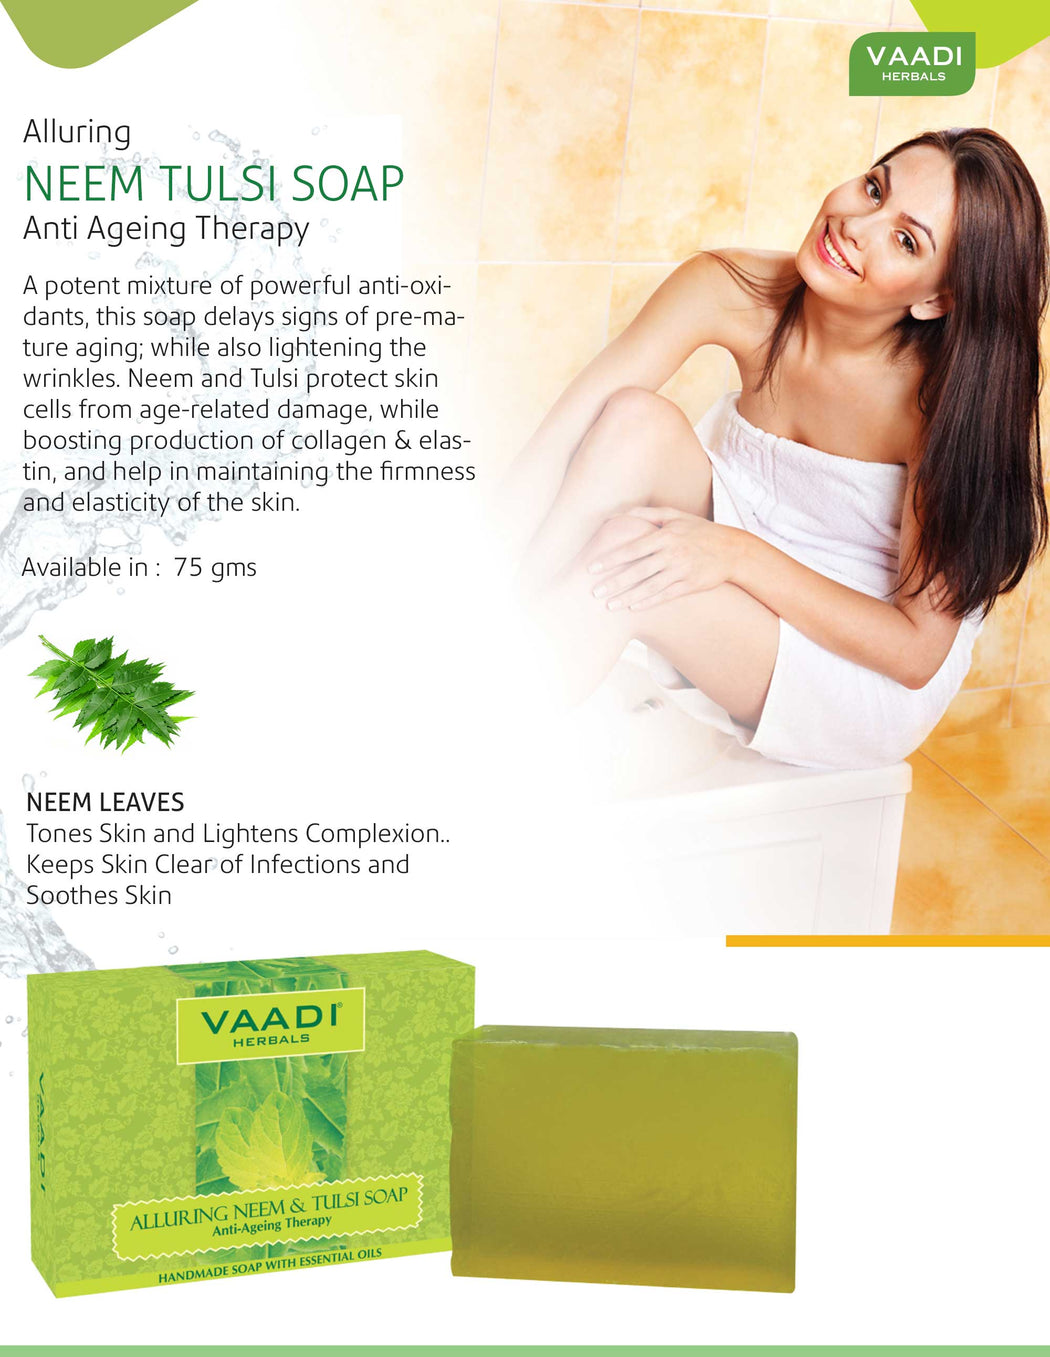 Organic Anti Bacterial Neem Tulsi Soap with Aloe Vera, Vitamin E & Tea Tree Oil (6 x 75 gms / 2.7 oz)